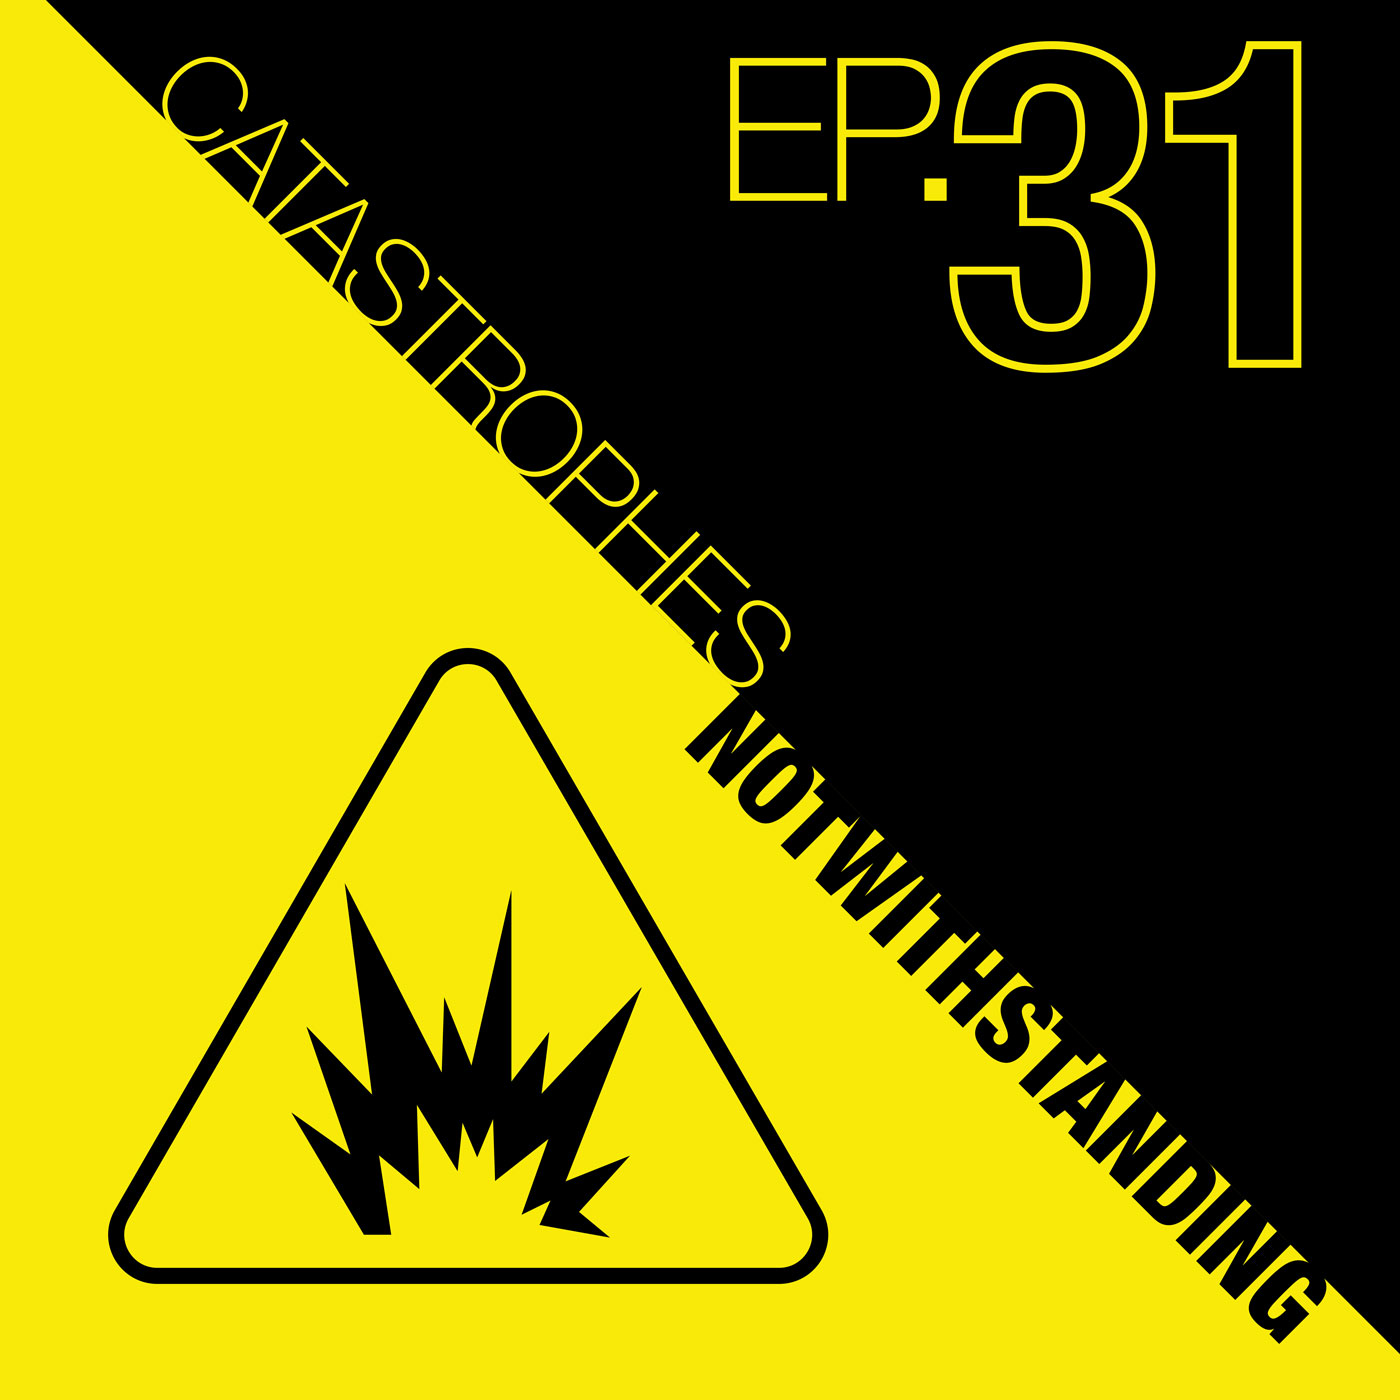 Cover Image of Catastrophes Notwithstanding Episode 31